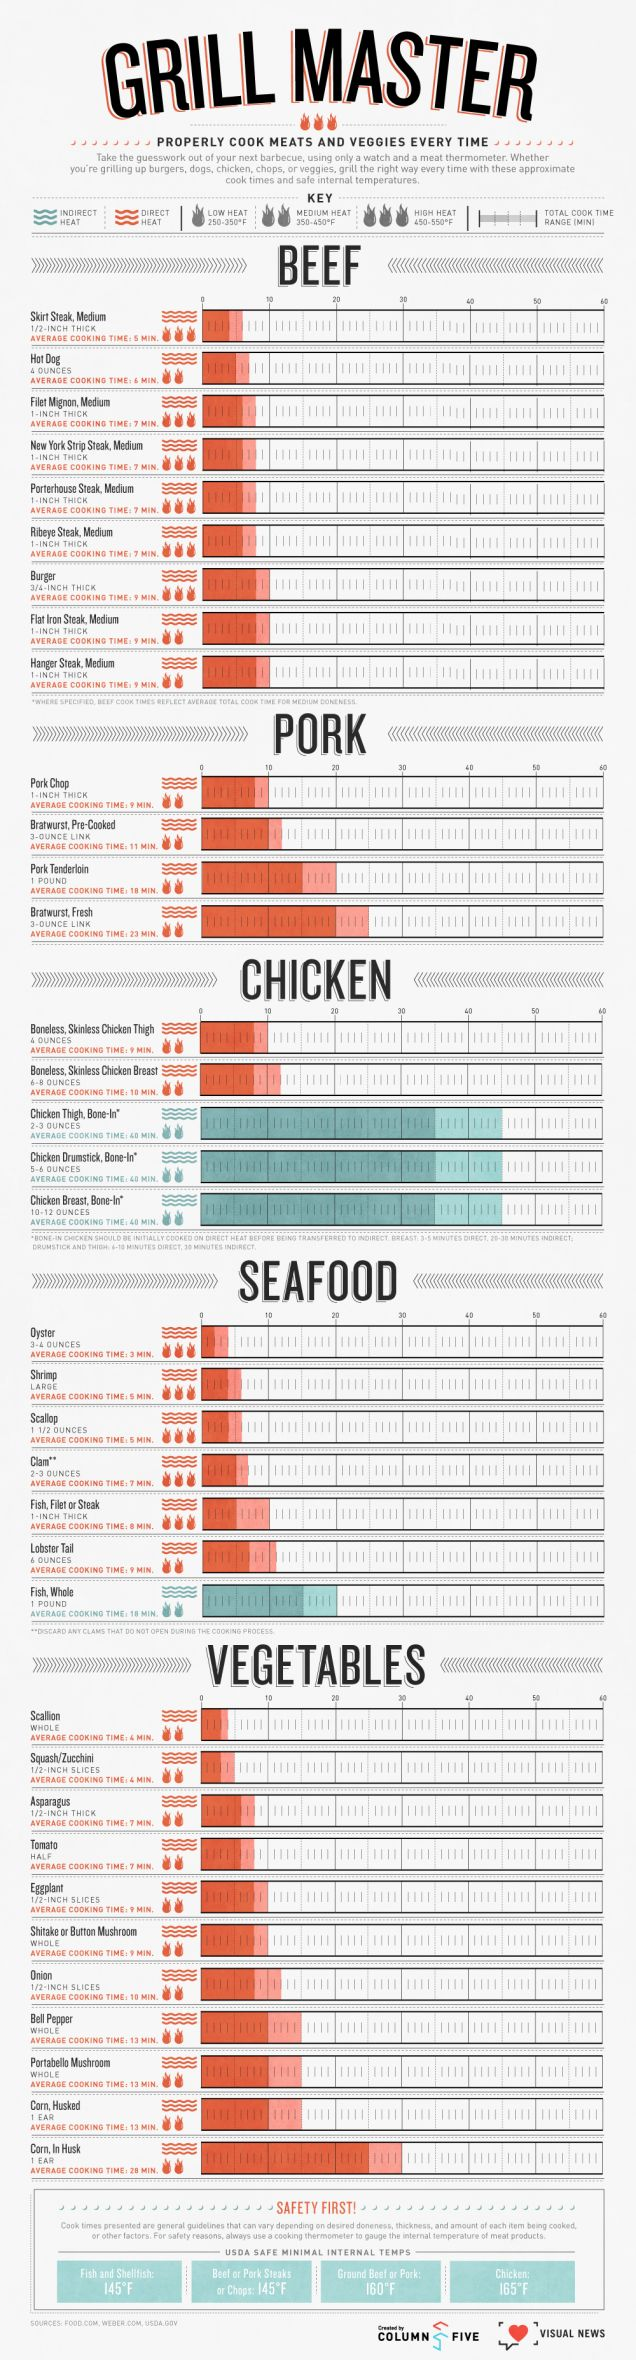 Learn How to Cook Anything on the Grill With This Infographic